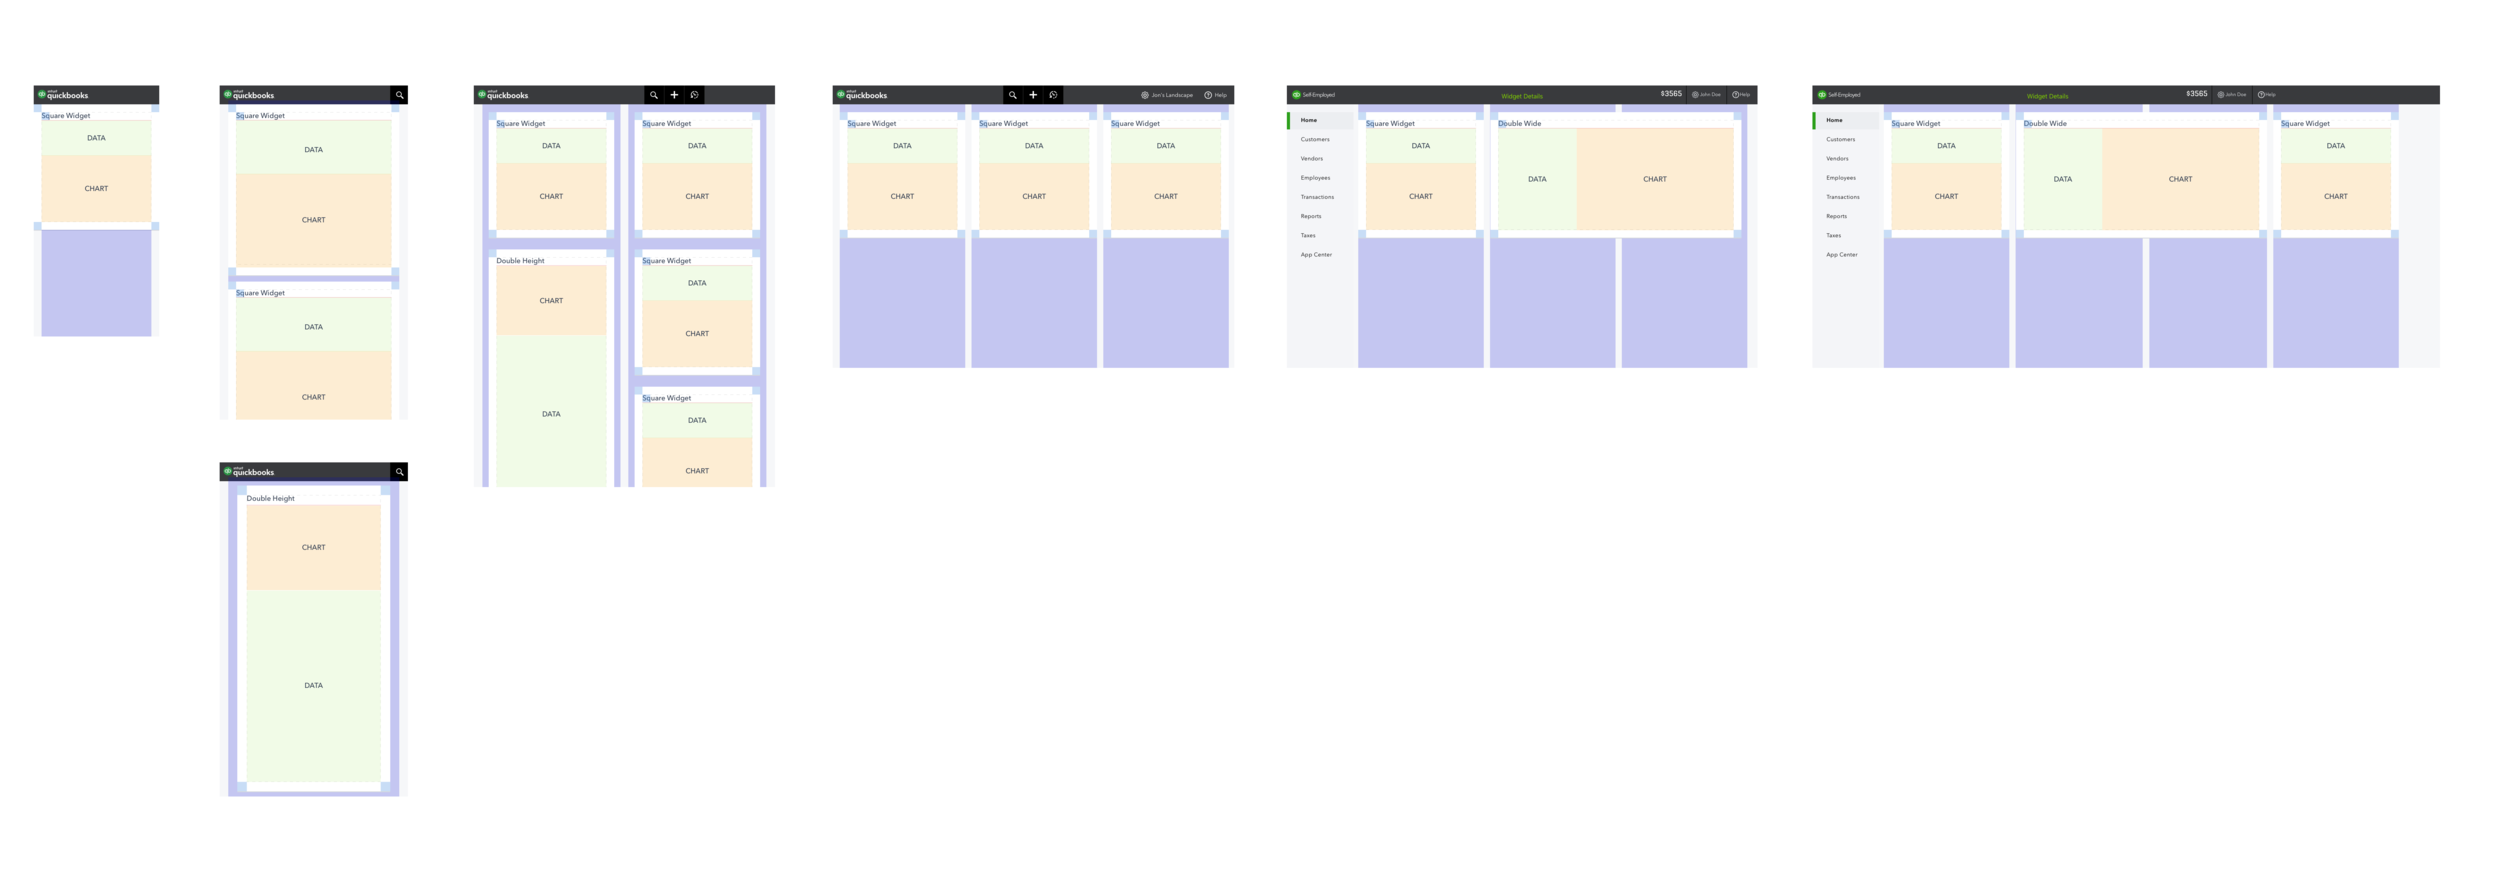 Responsive Grid Layout.png